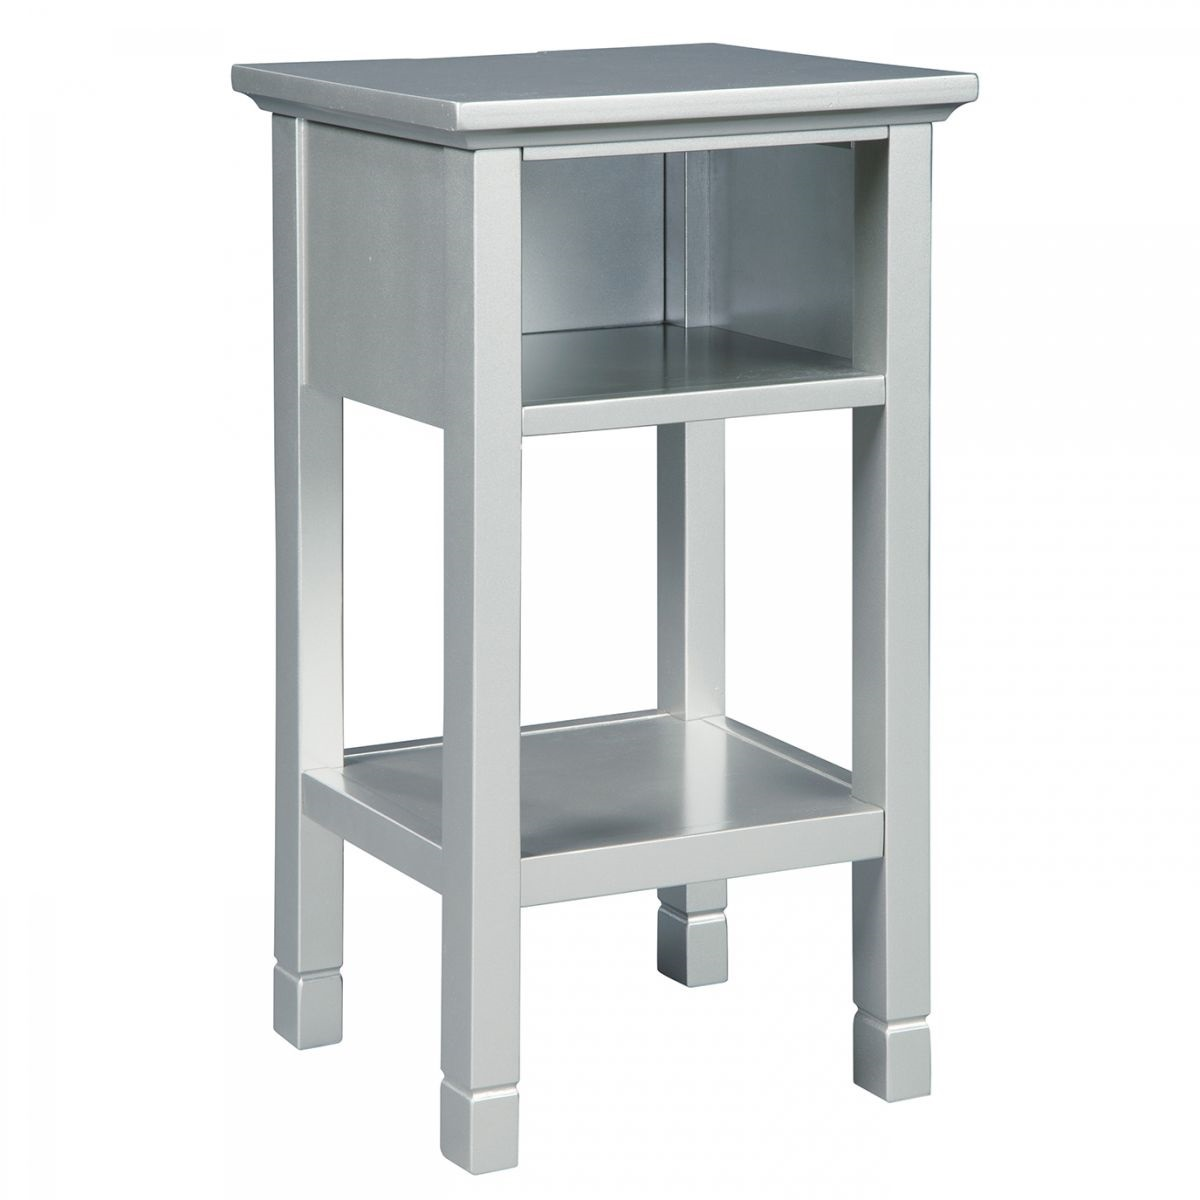 marnville silver accent table with usb port badcock more ture pottery barn style tables grey recliner round outdoor chair teak side commercial office furniture rustic nightstands